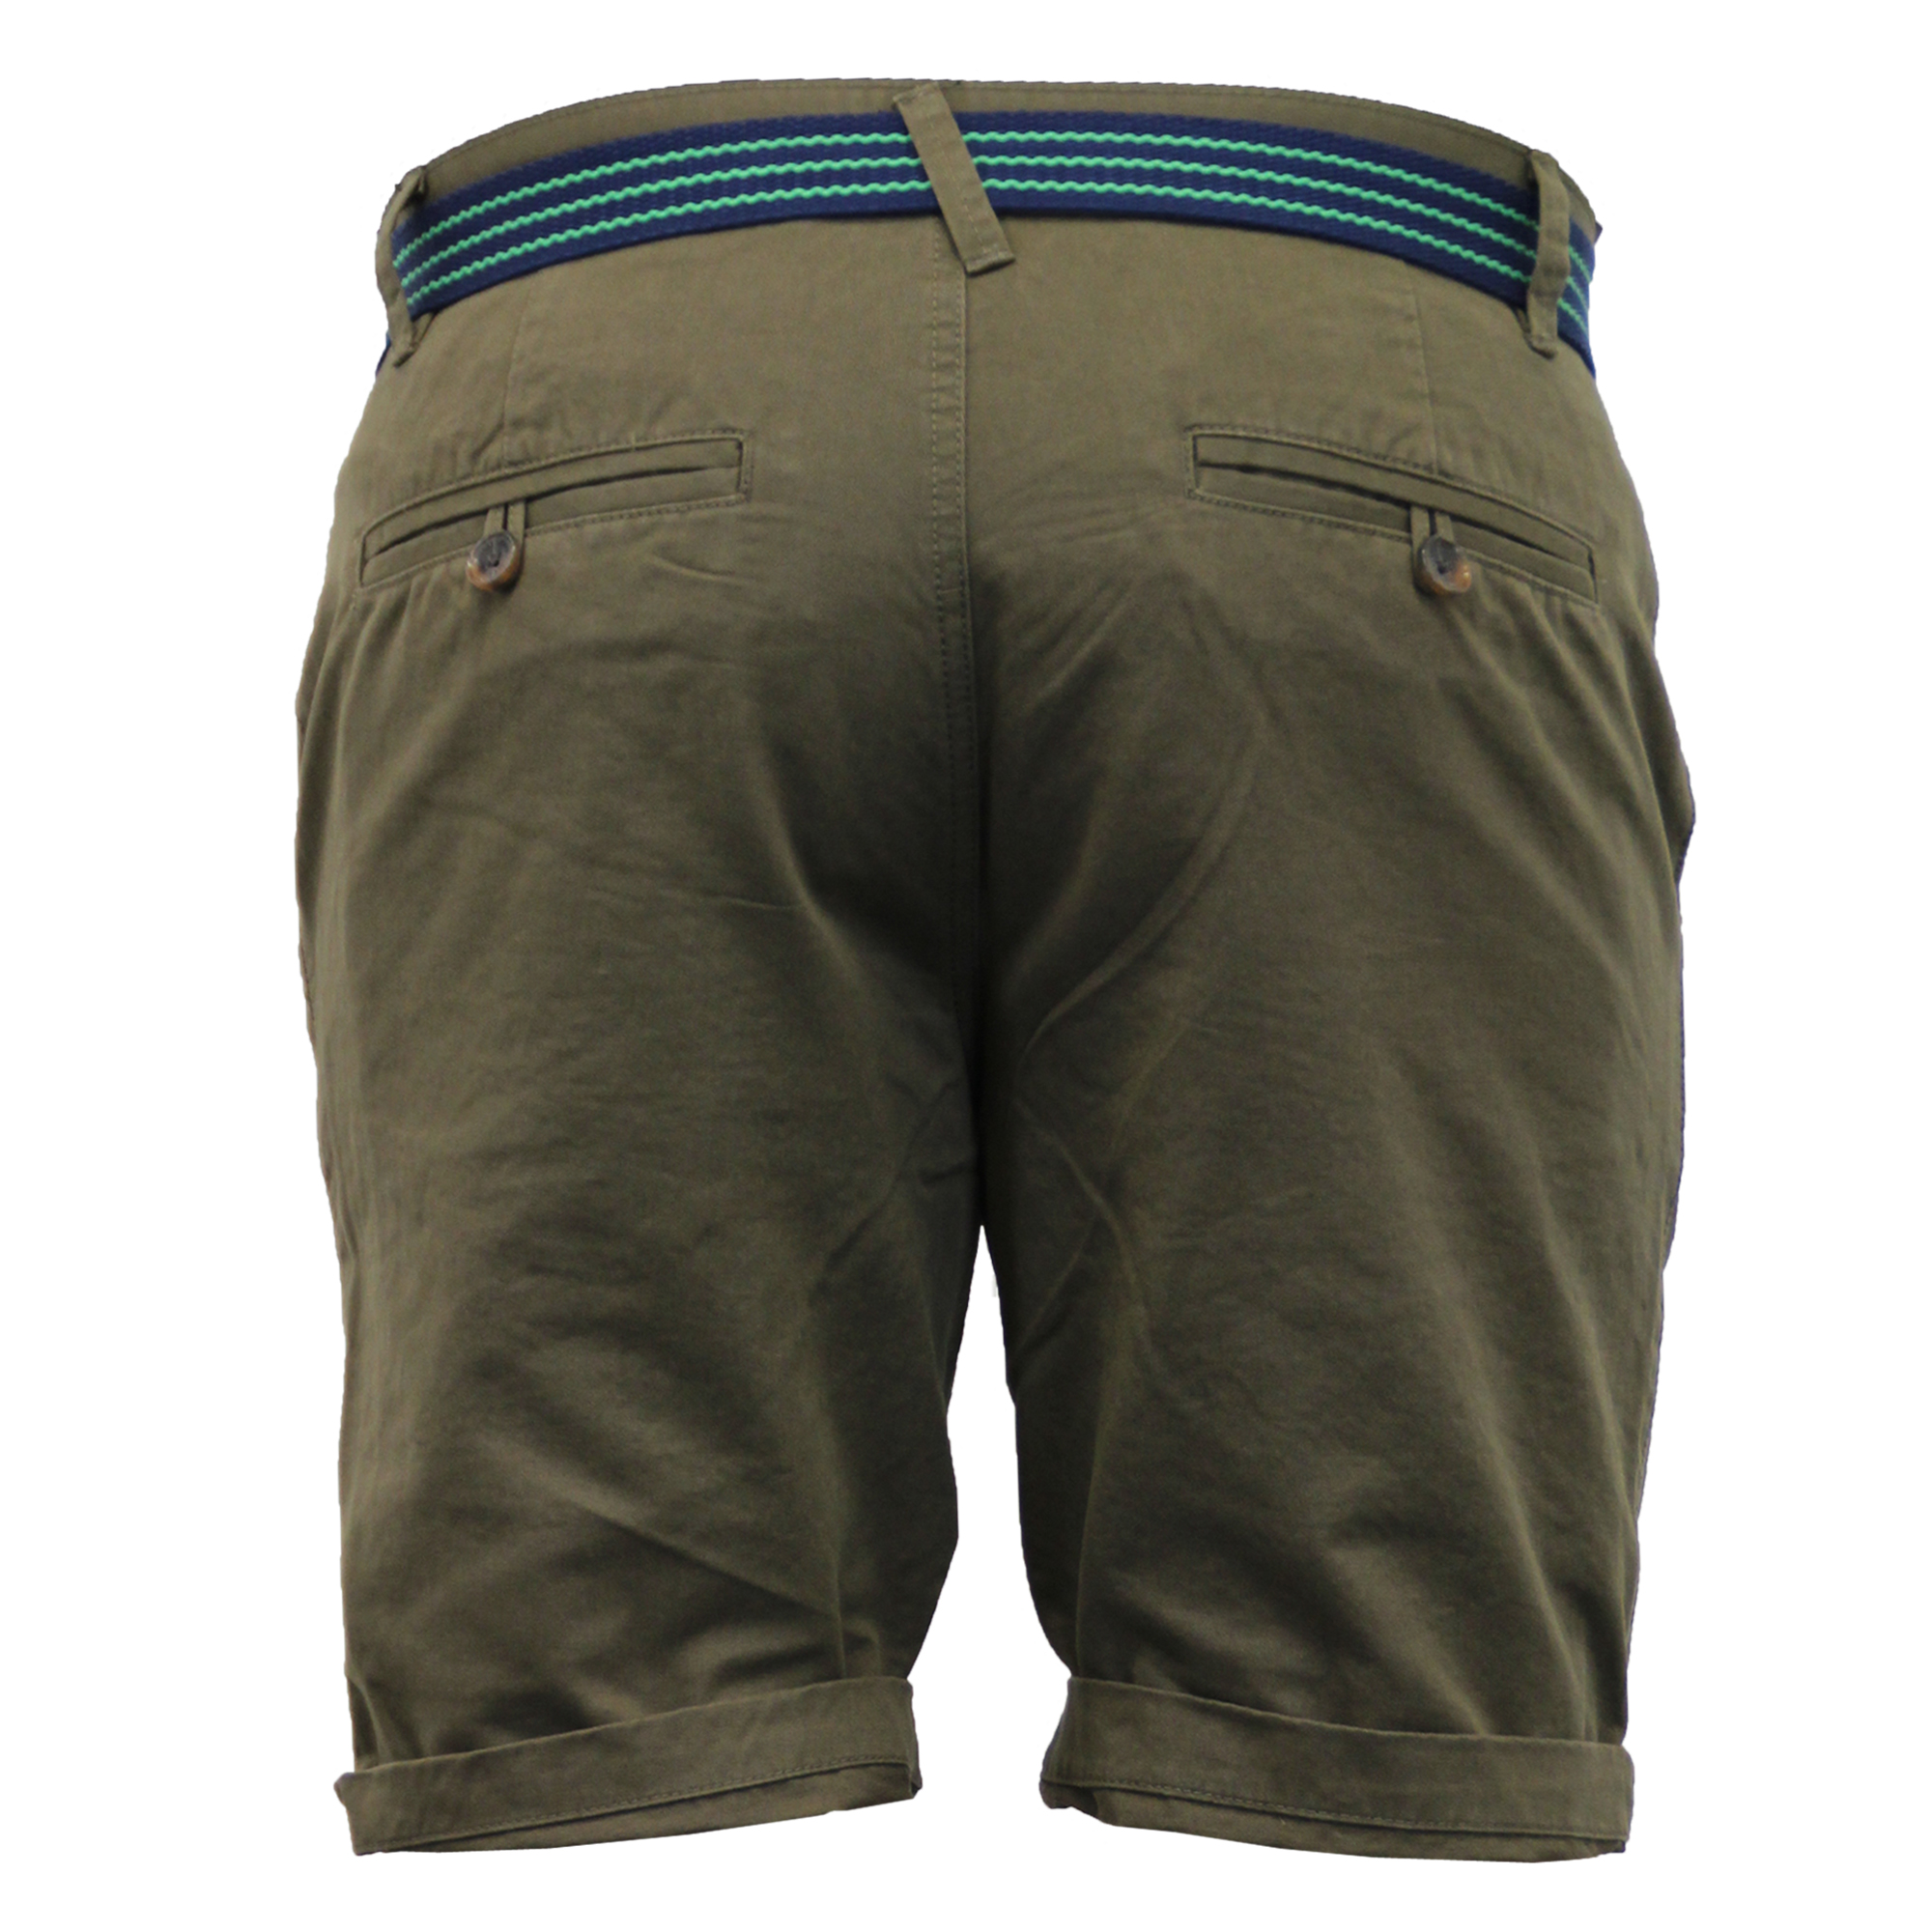 Mens-Chino-Shorts-Threadbare-Belted-Westace-Pants-Knee-Length-Roll-Up-Summer-New thumbnail 3